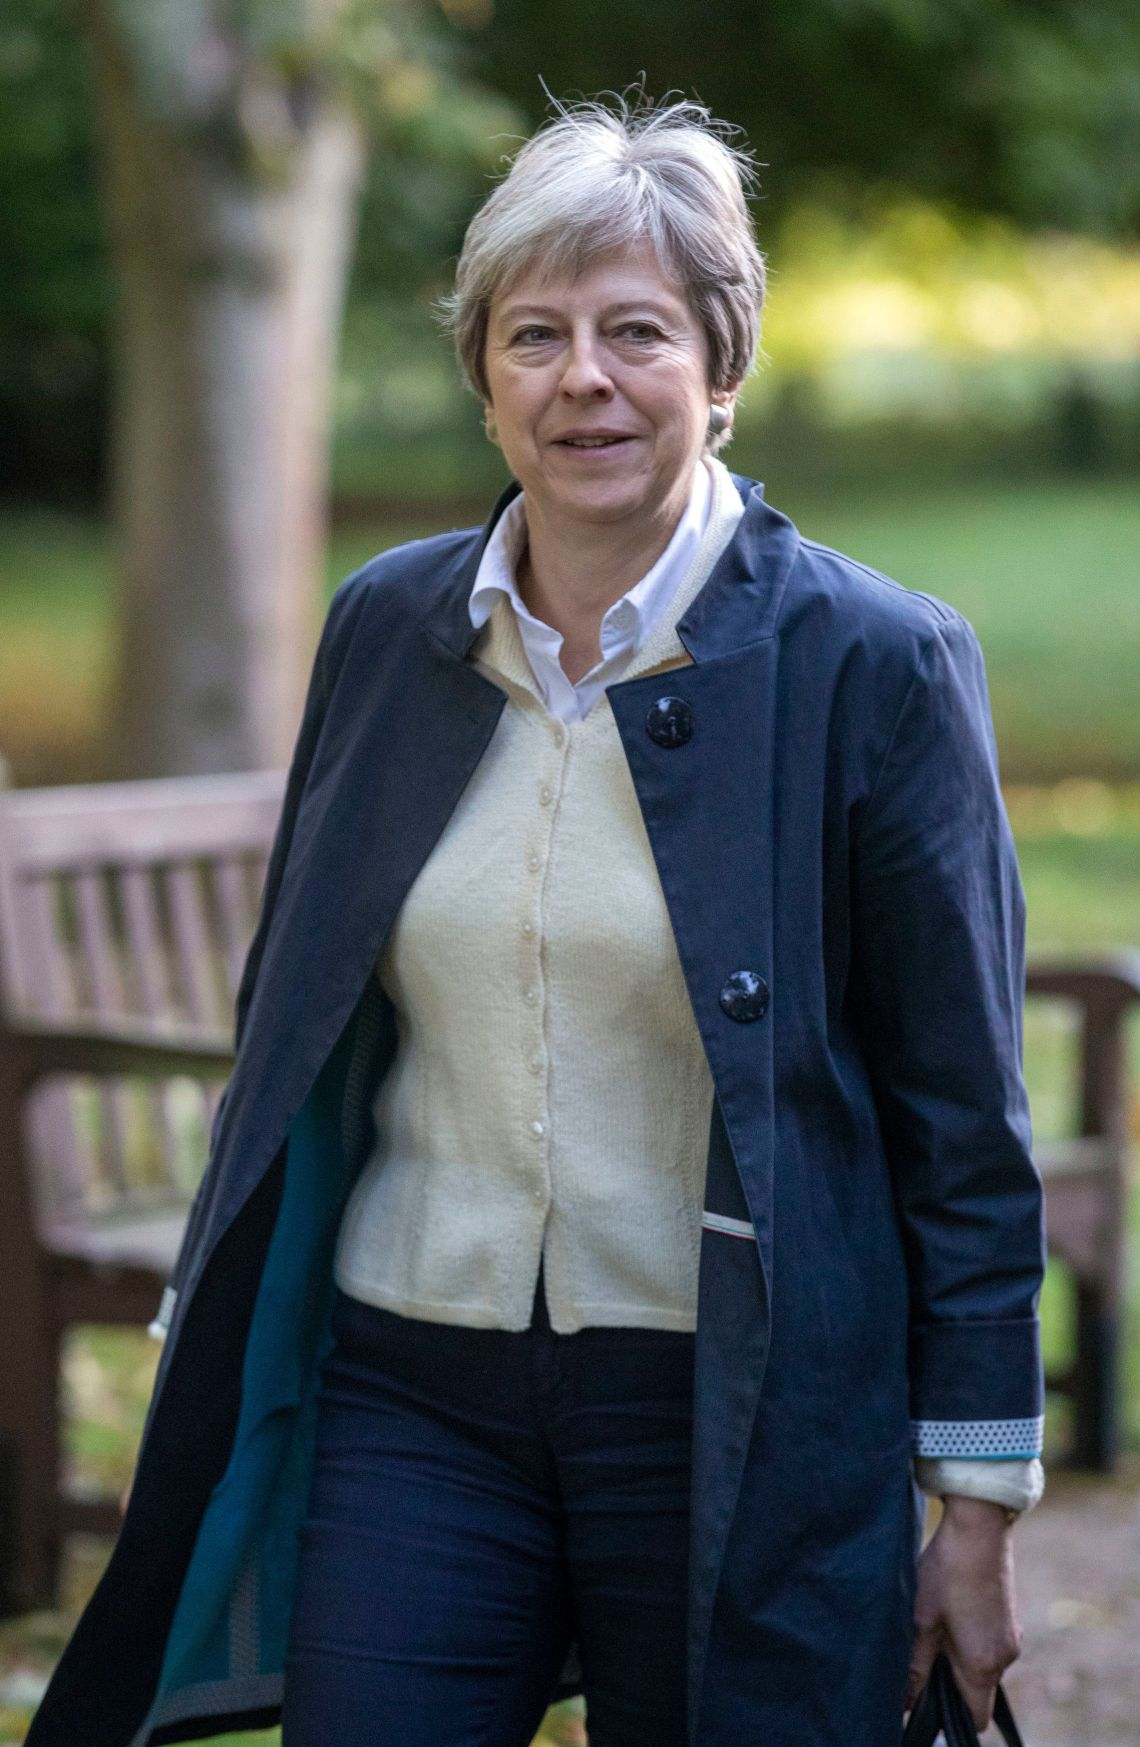 Prime Minister Theresa May has said she wants to return to her pledge to tackle